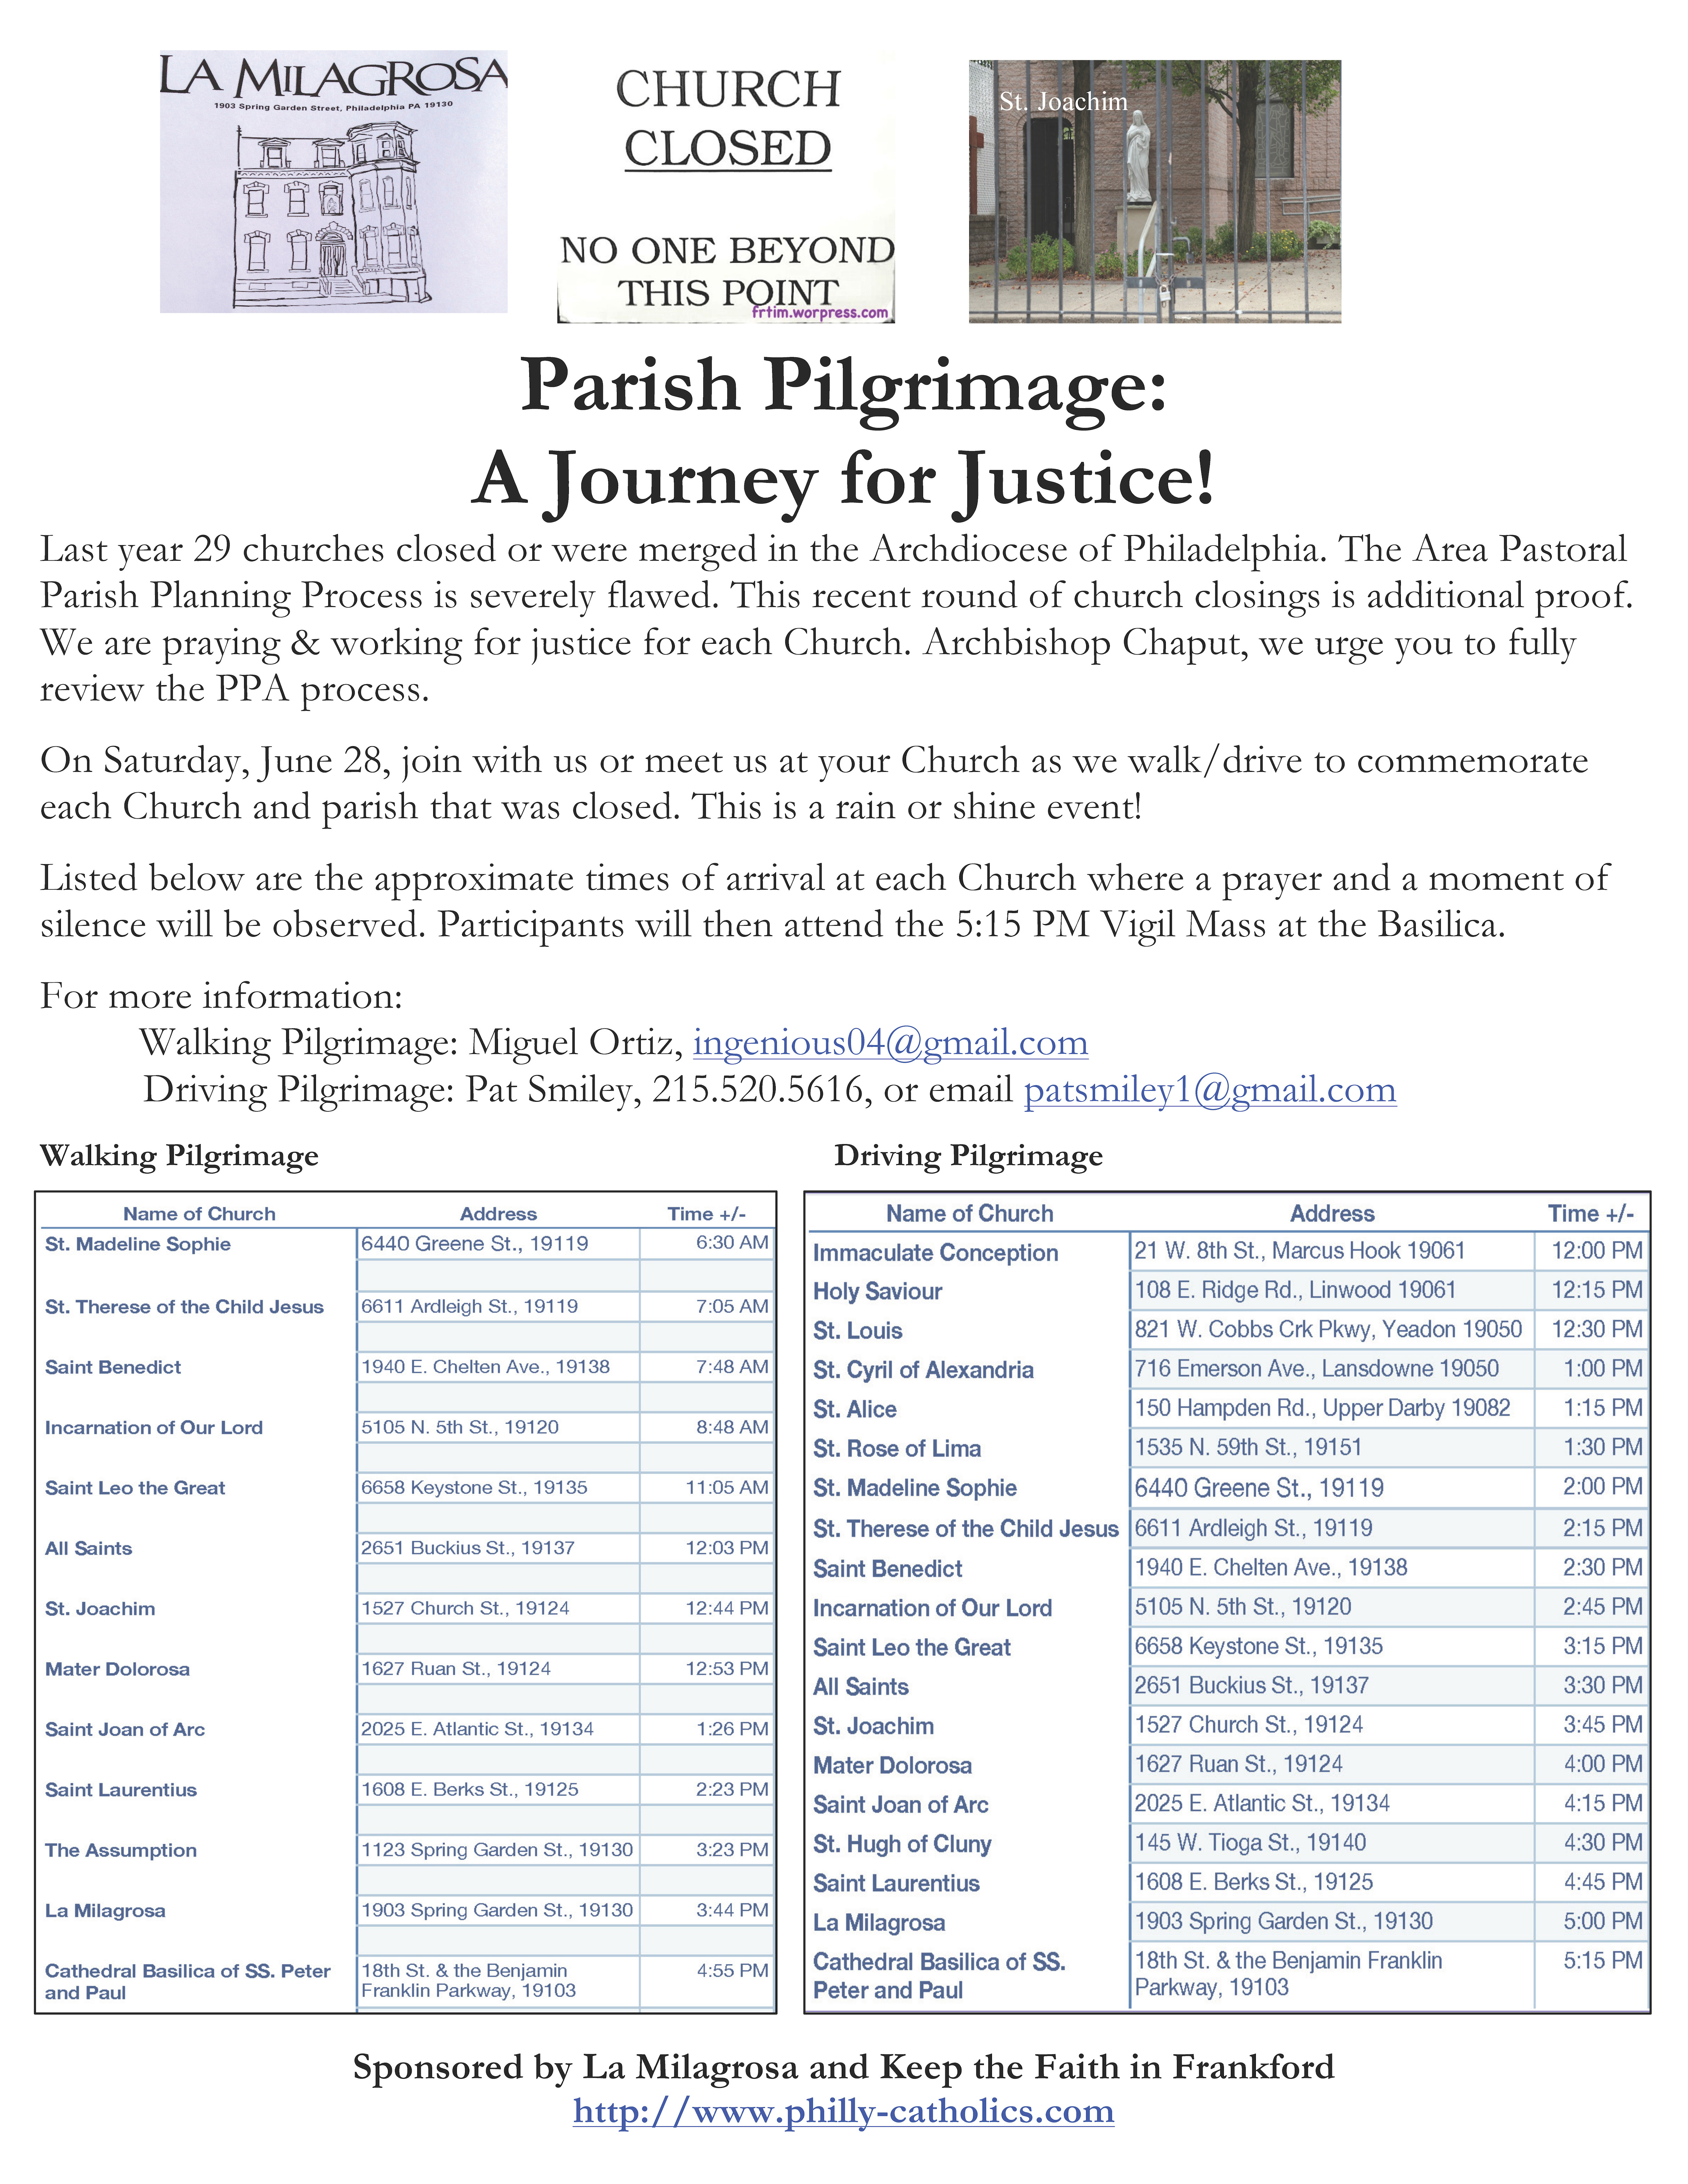 Parish Pilgrimage Image